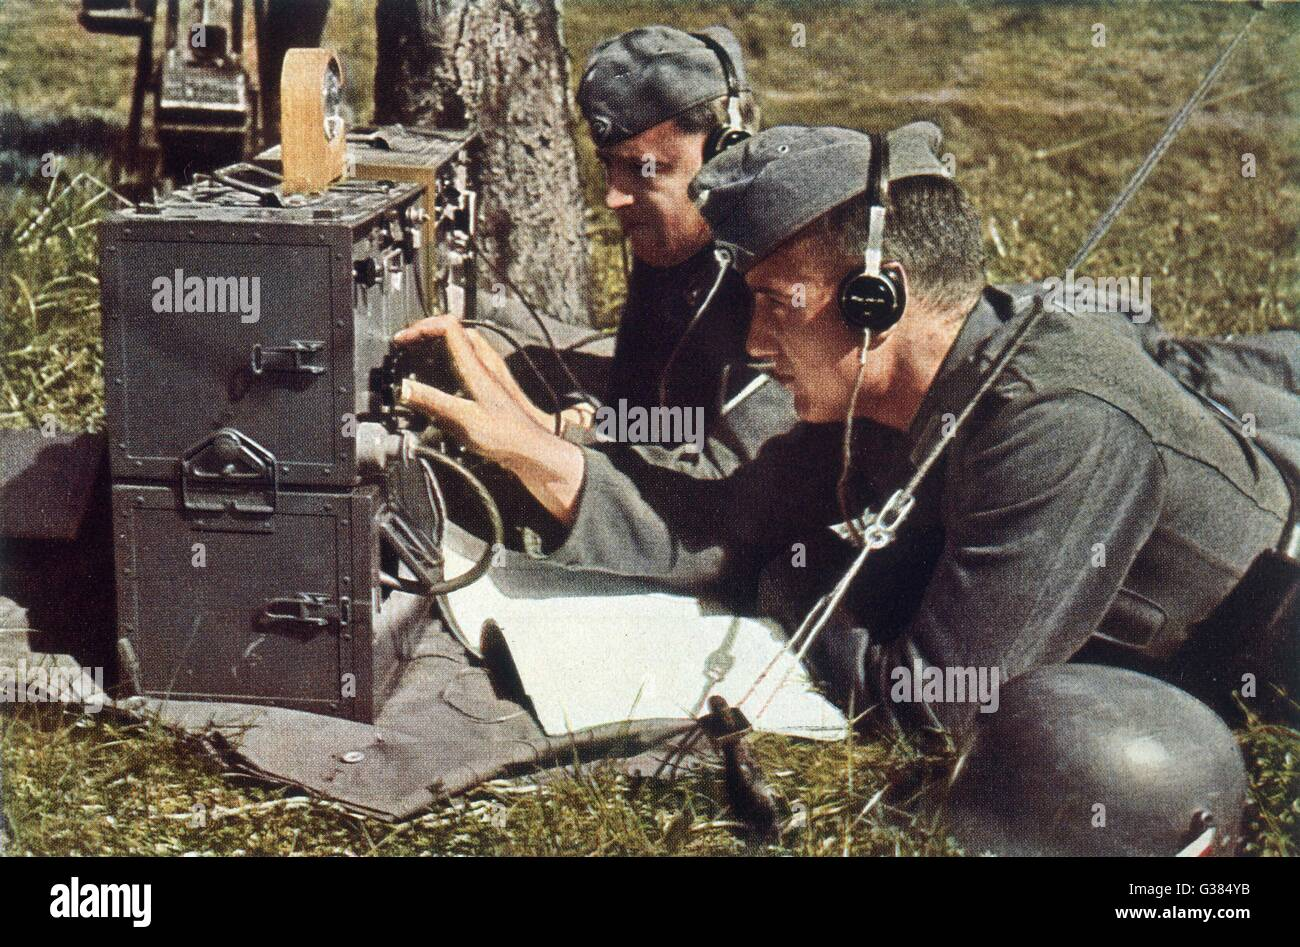 German army with field radio  in operation        Date: 1940 - Stock Image